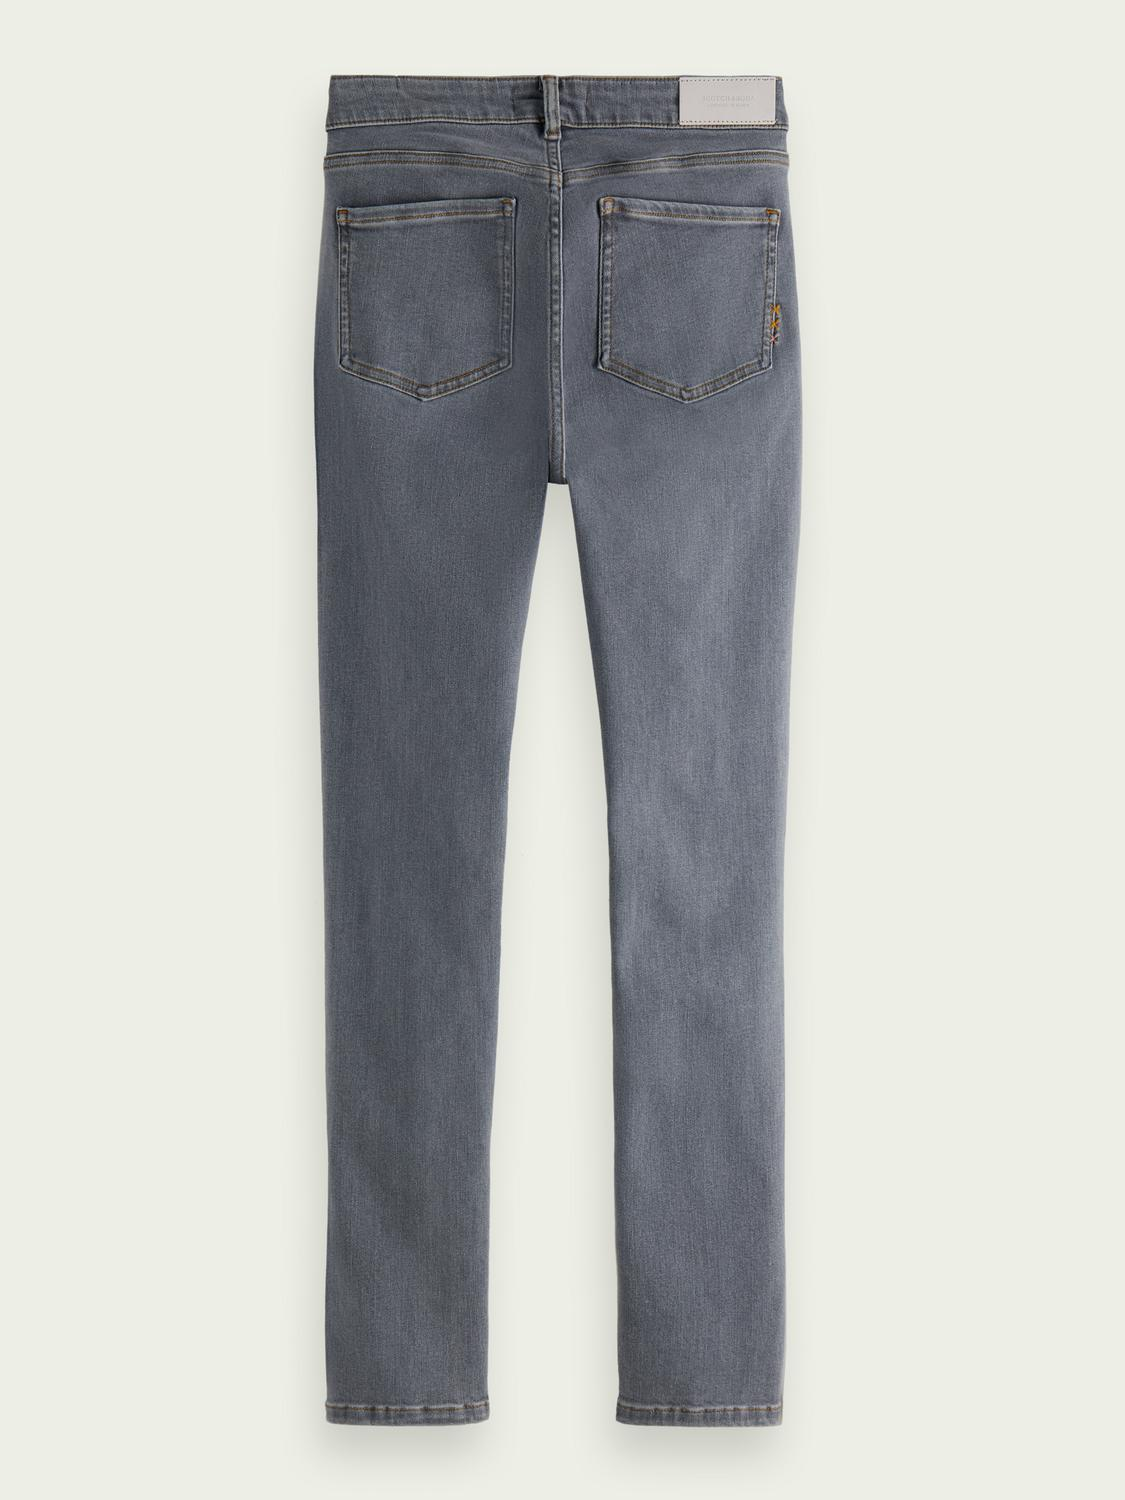 Bohemienne skinny-fit jeans —Nowhere to go 6